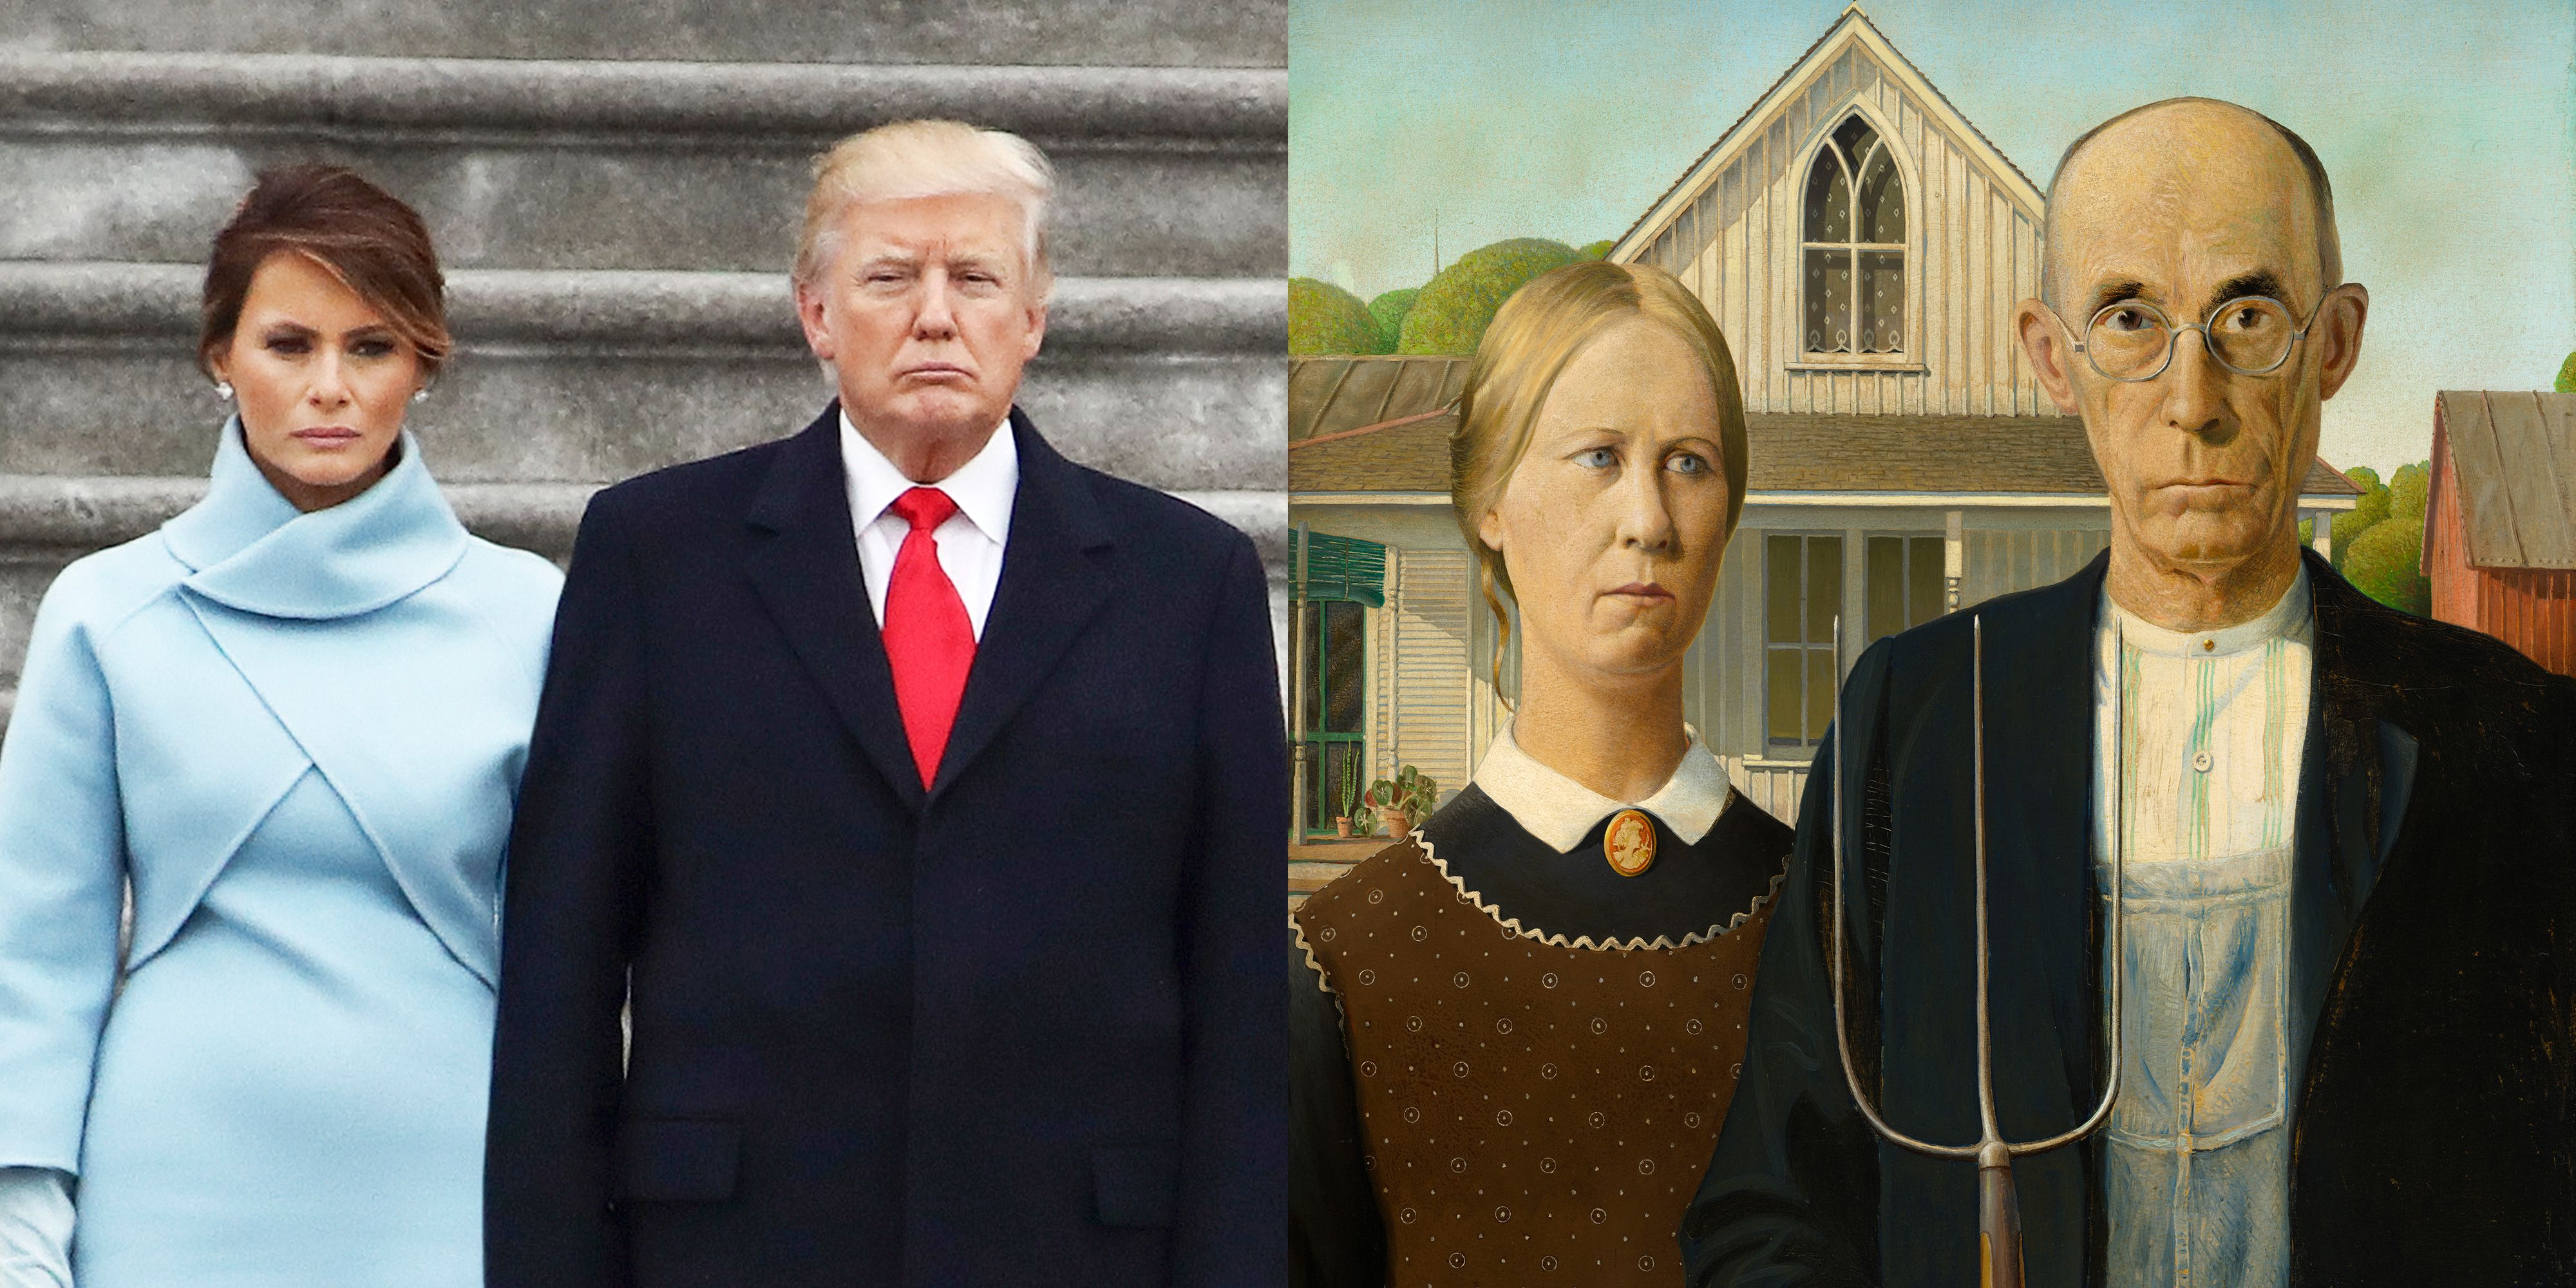 trump and melania american gothic